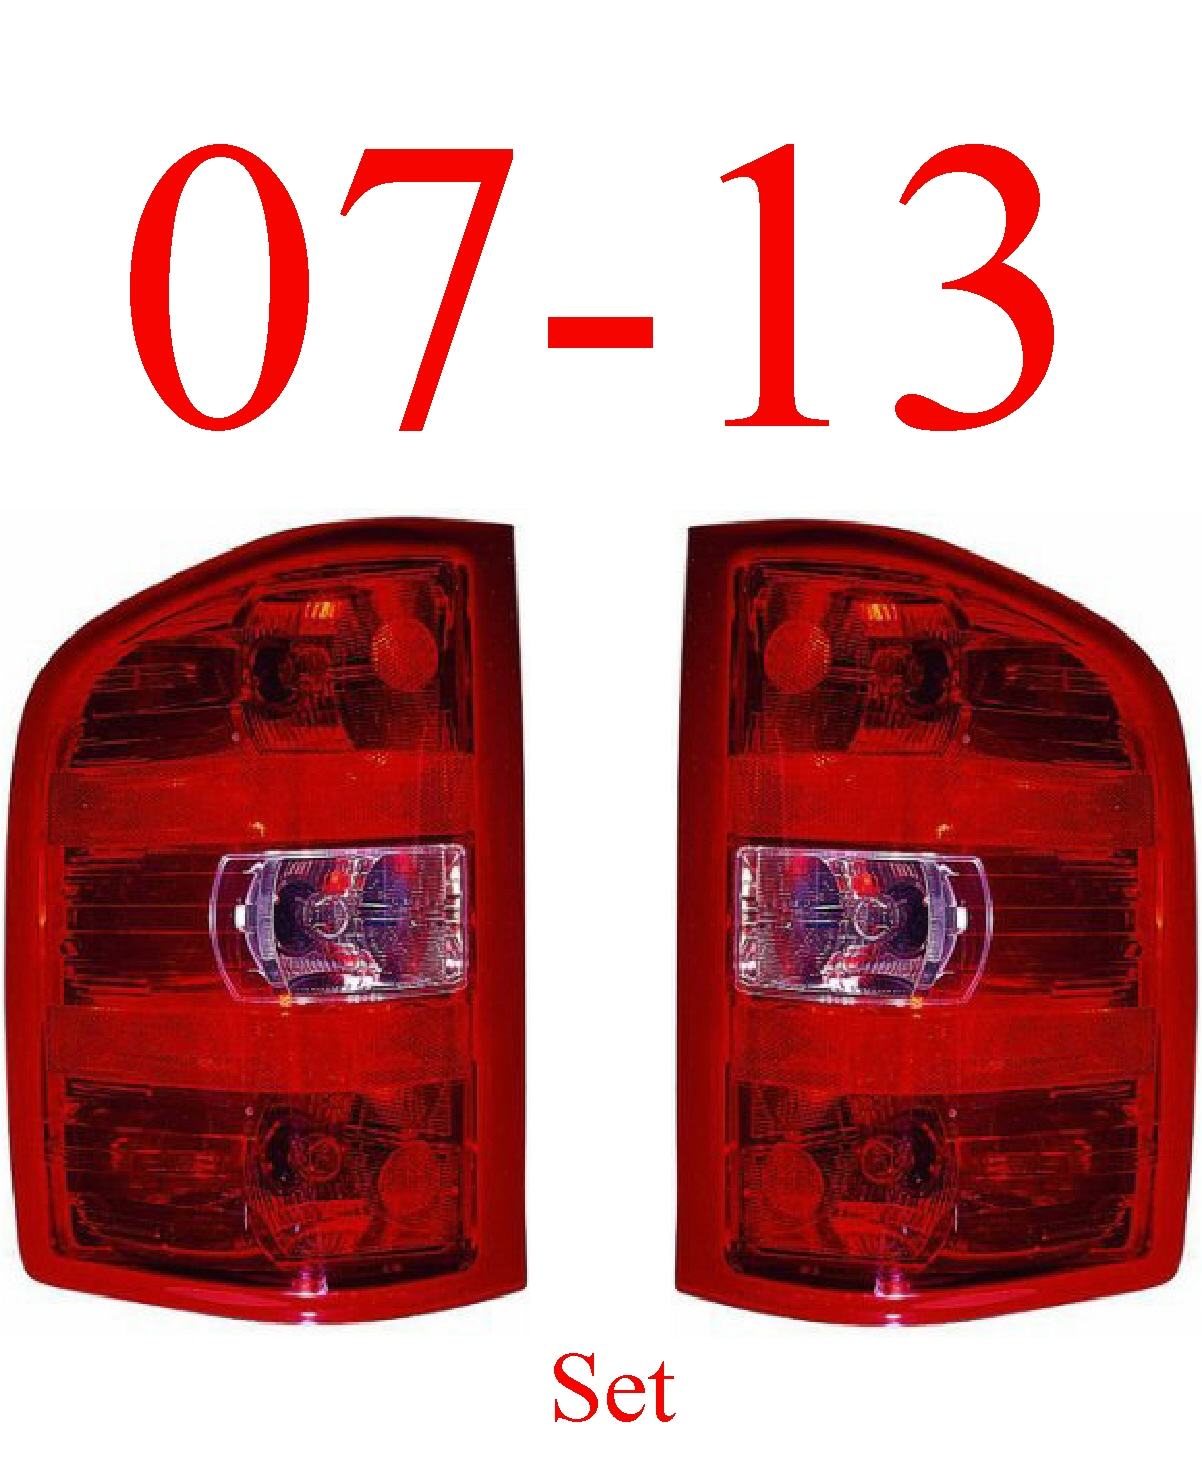 07-13 Chevy Tail Light Set, Assembly